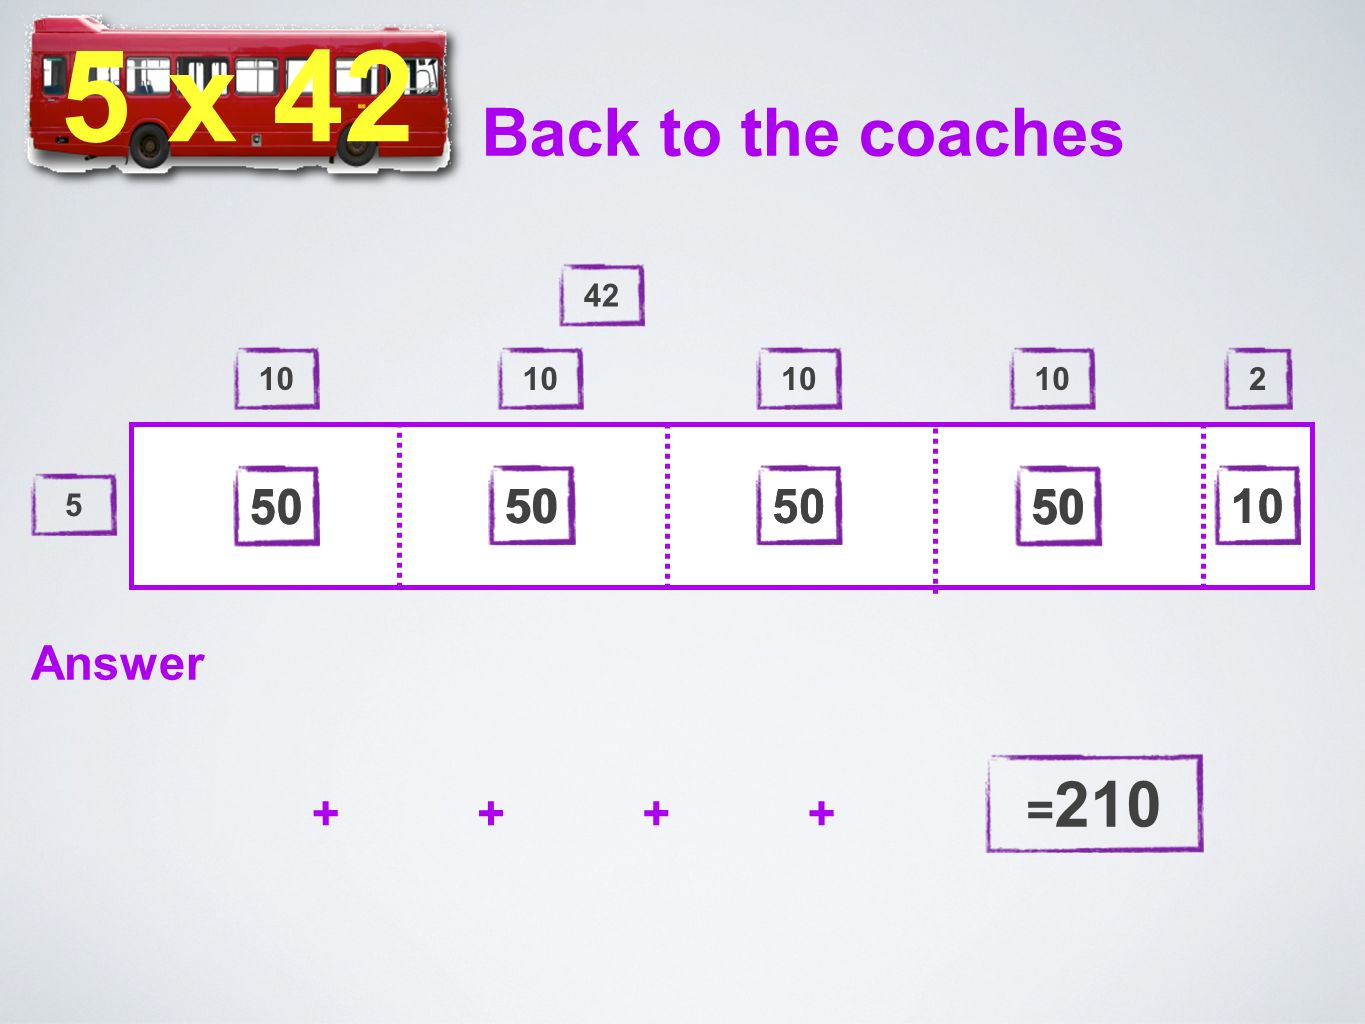 5 42 50 10 2 50 +++ = 210 Back to the coaches 50 10 + 5 x 42 5 x 42 Answer